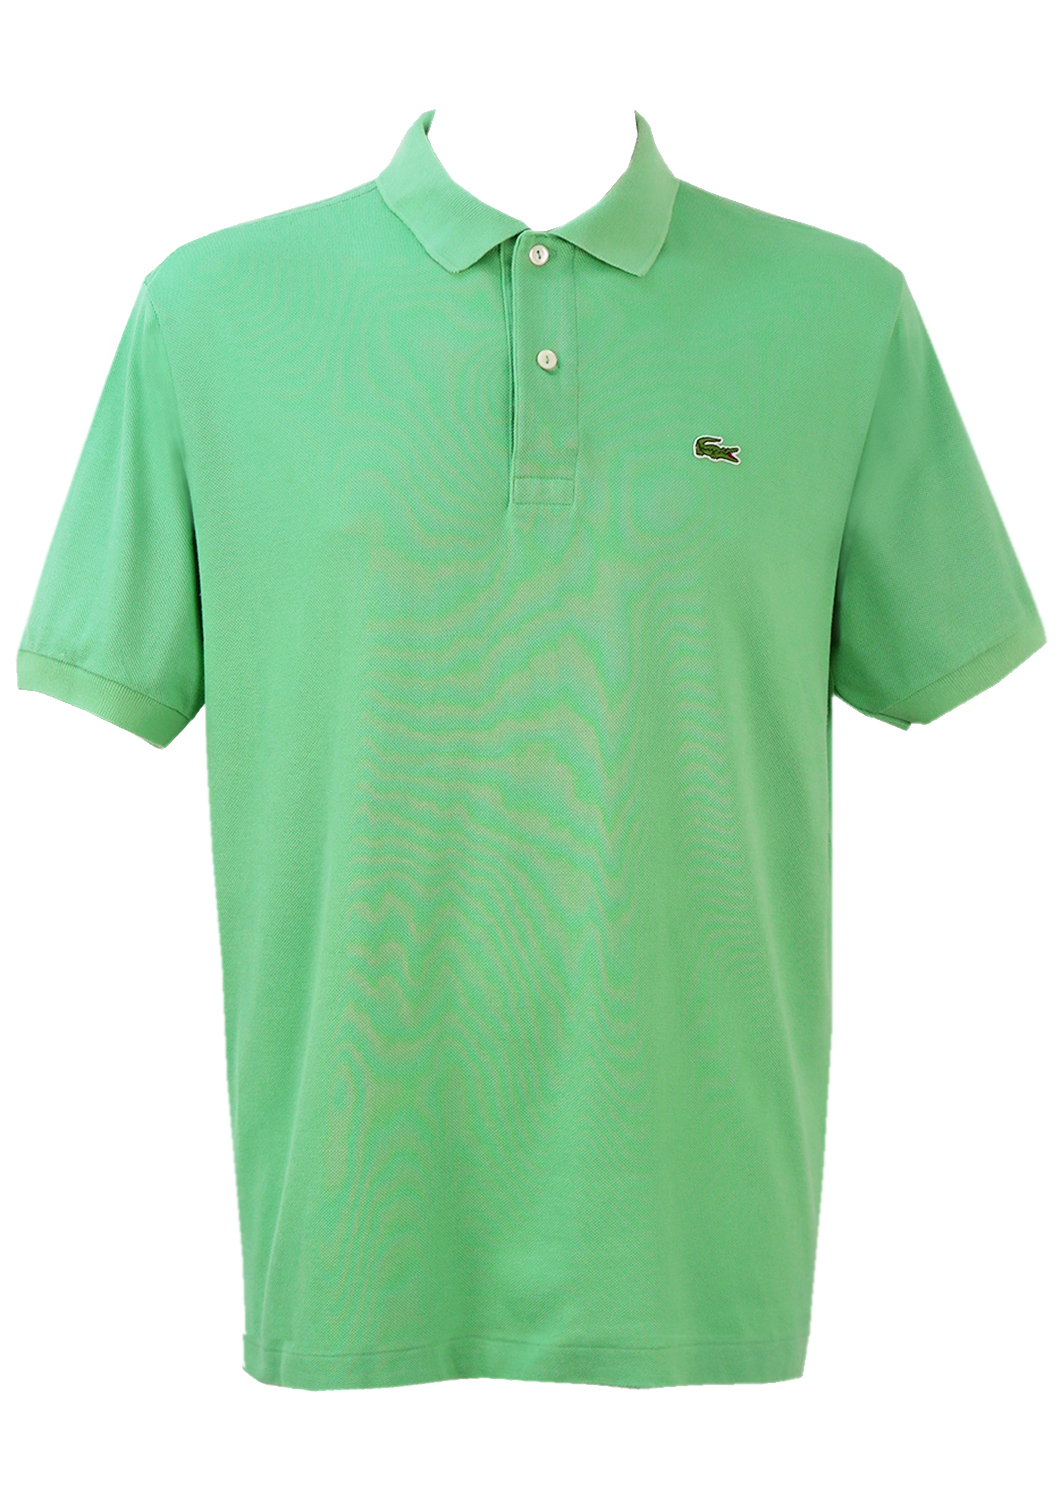 lacoste mint green polo shirt l xl reign vintage